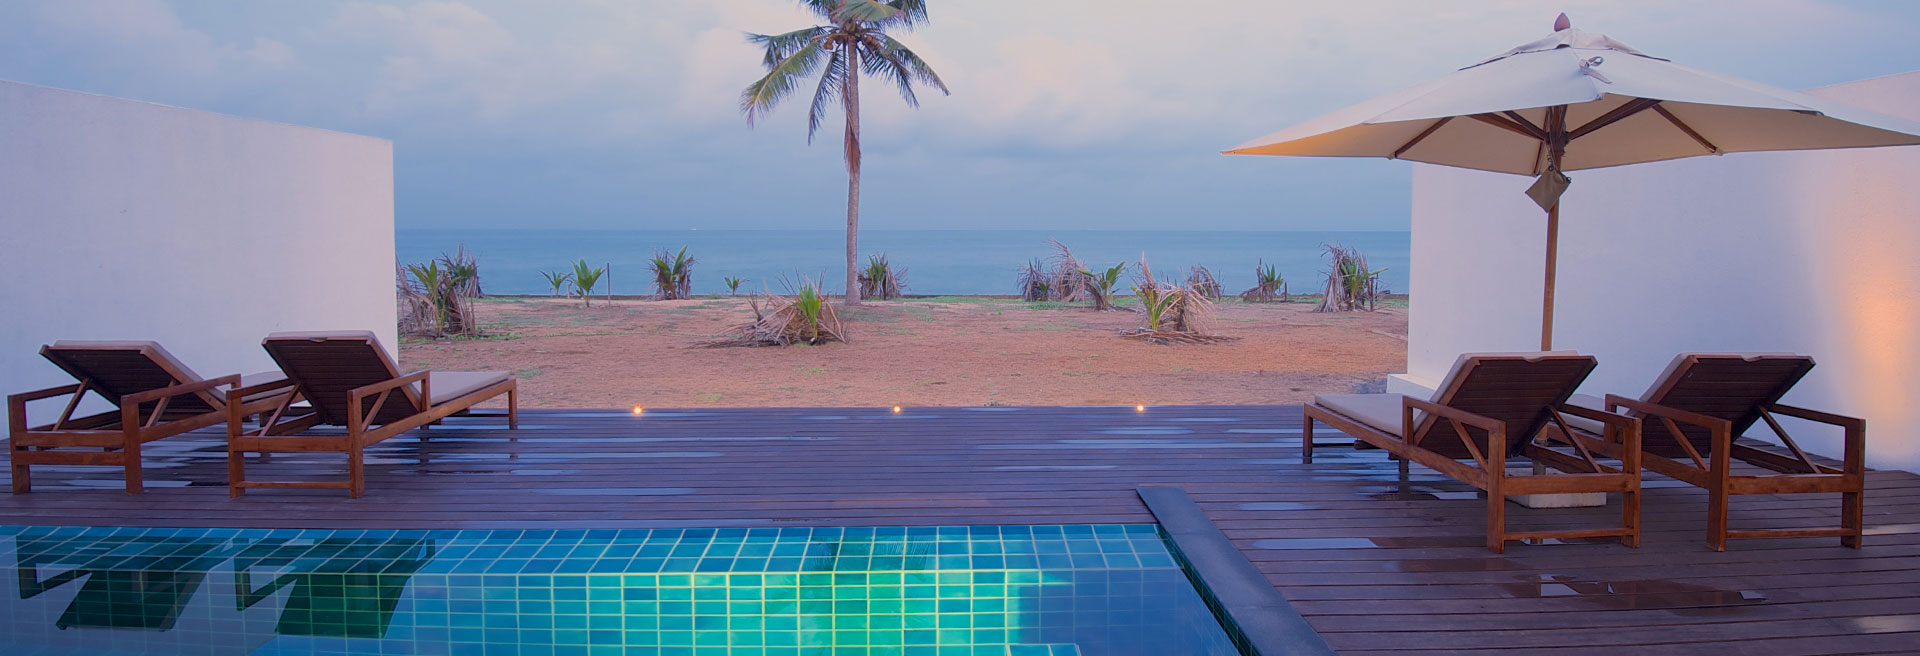 view of the pool facing the beach